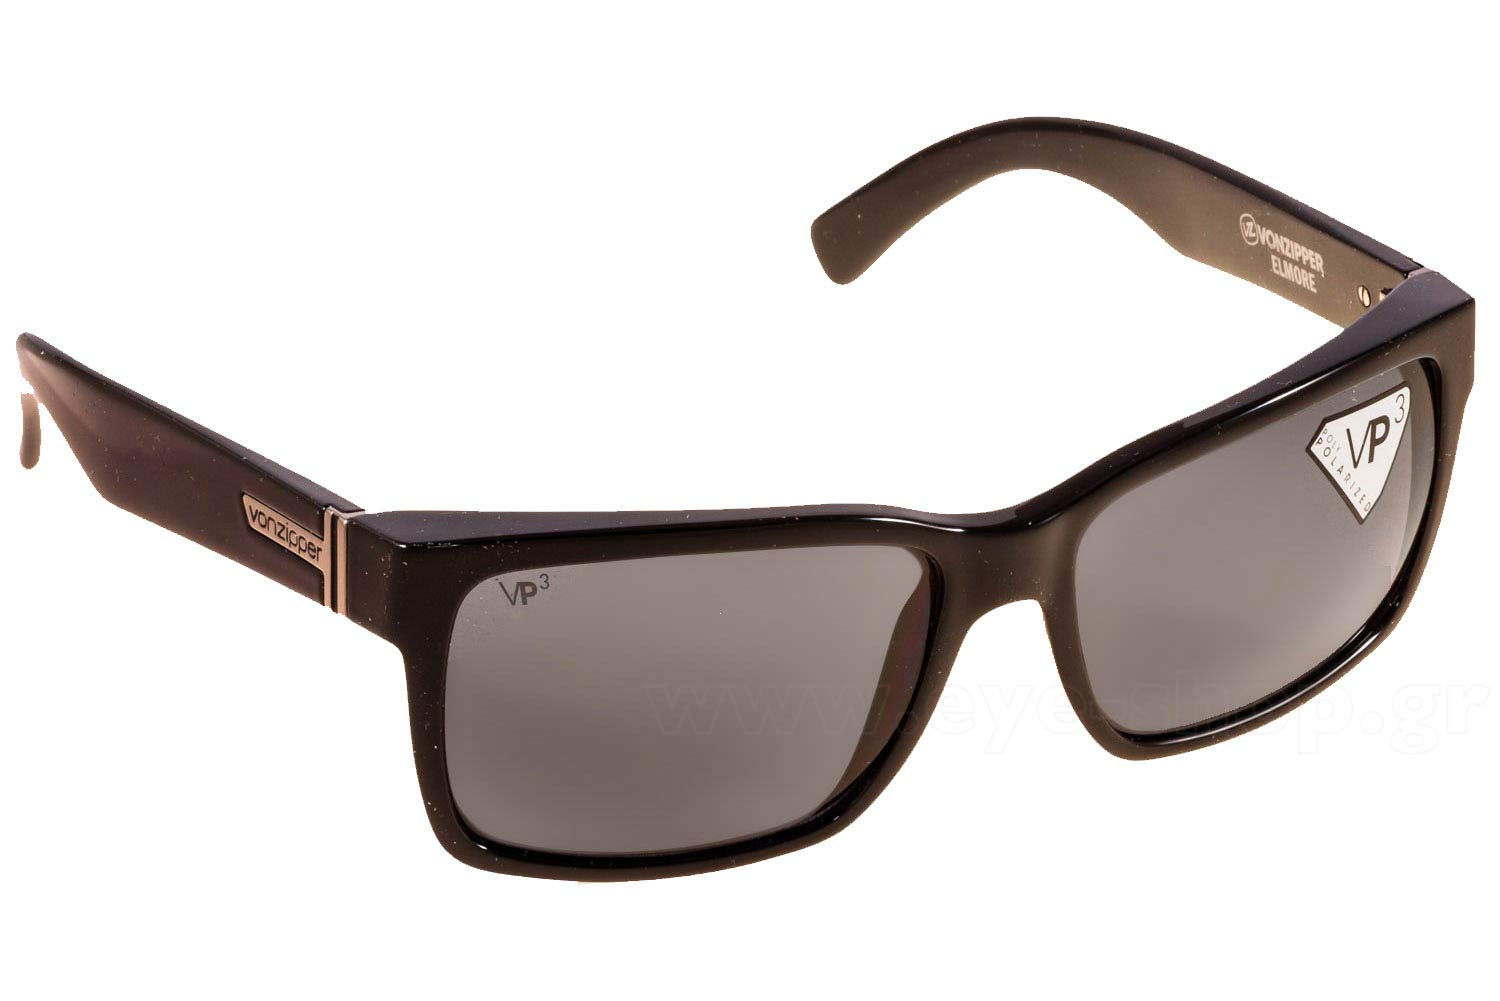 9d2b7b8126 SUNGLASSES Von Zipper Elmore VZSU79 Black Gloss Polarized